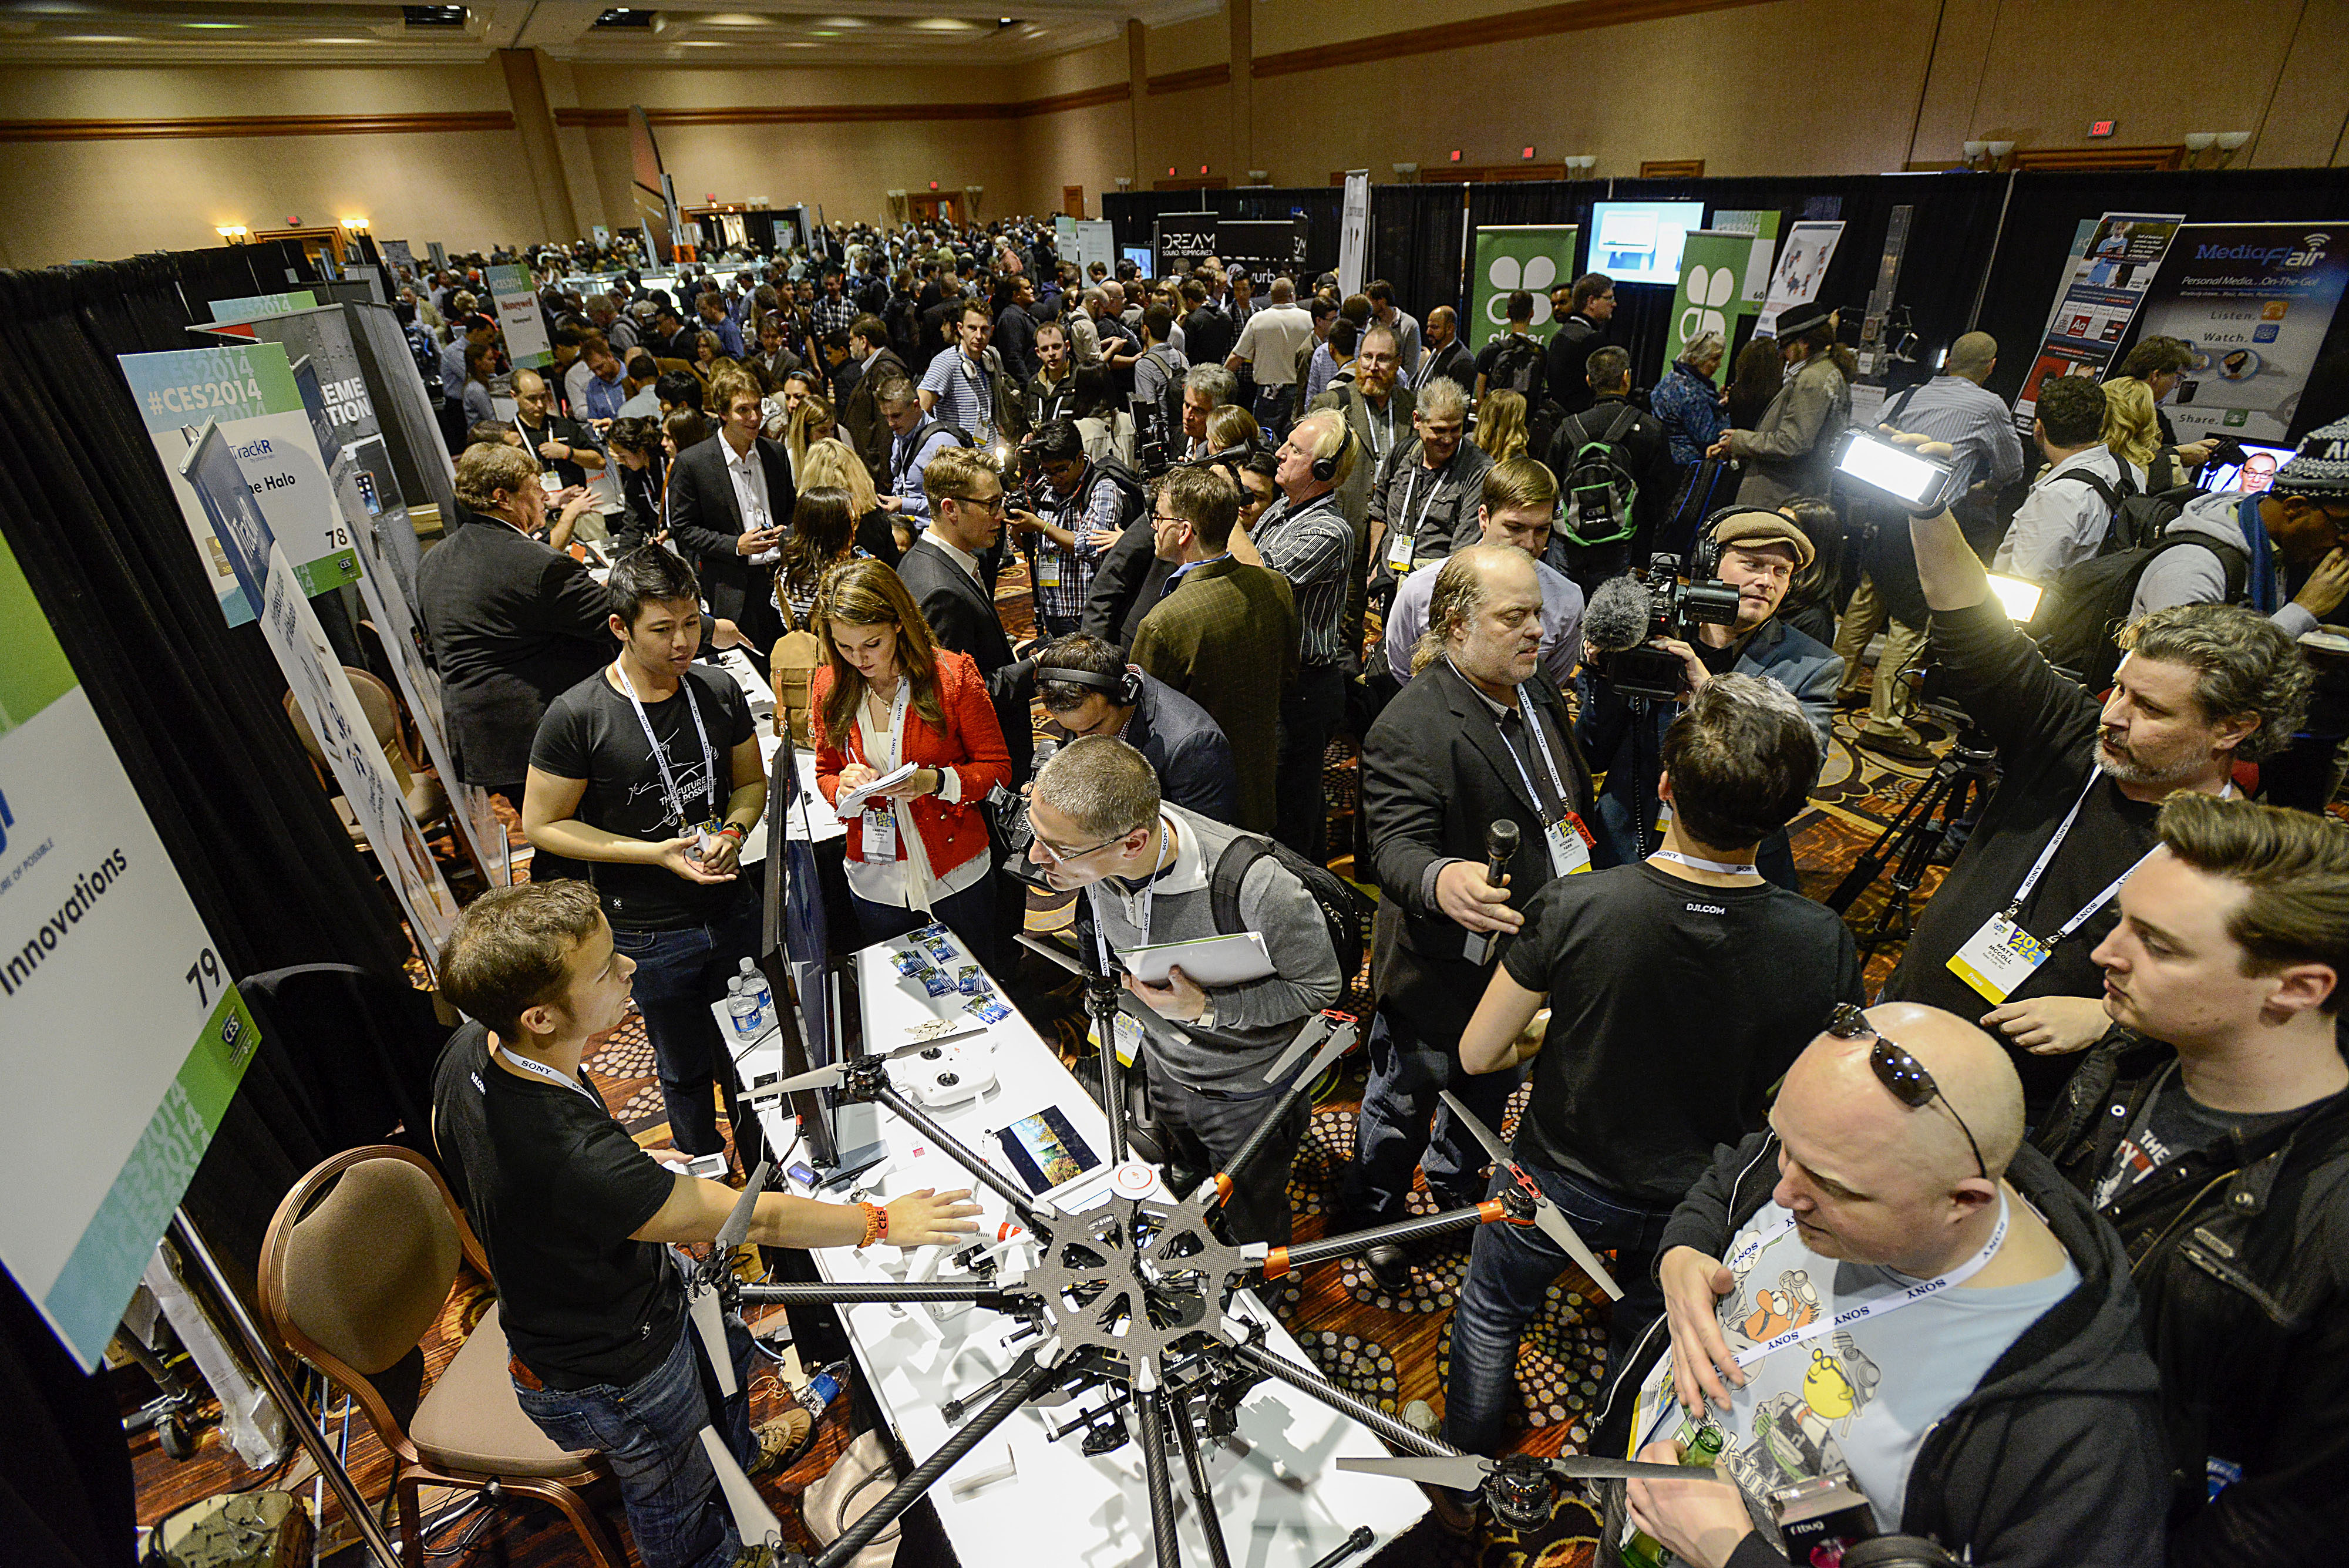 12 Best and Worst Things We Saw at CES 2015